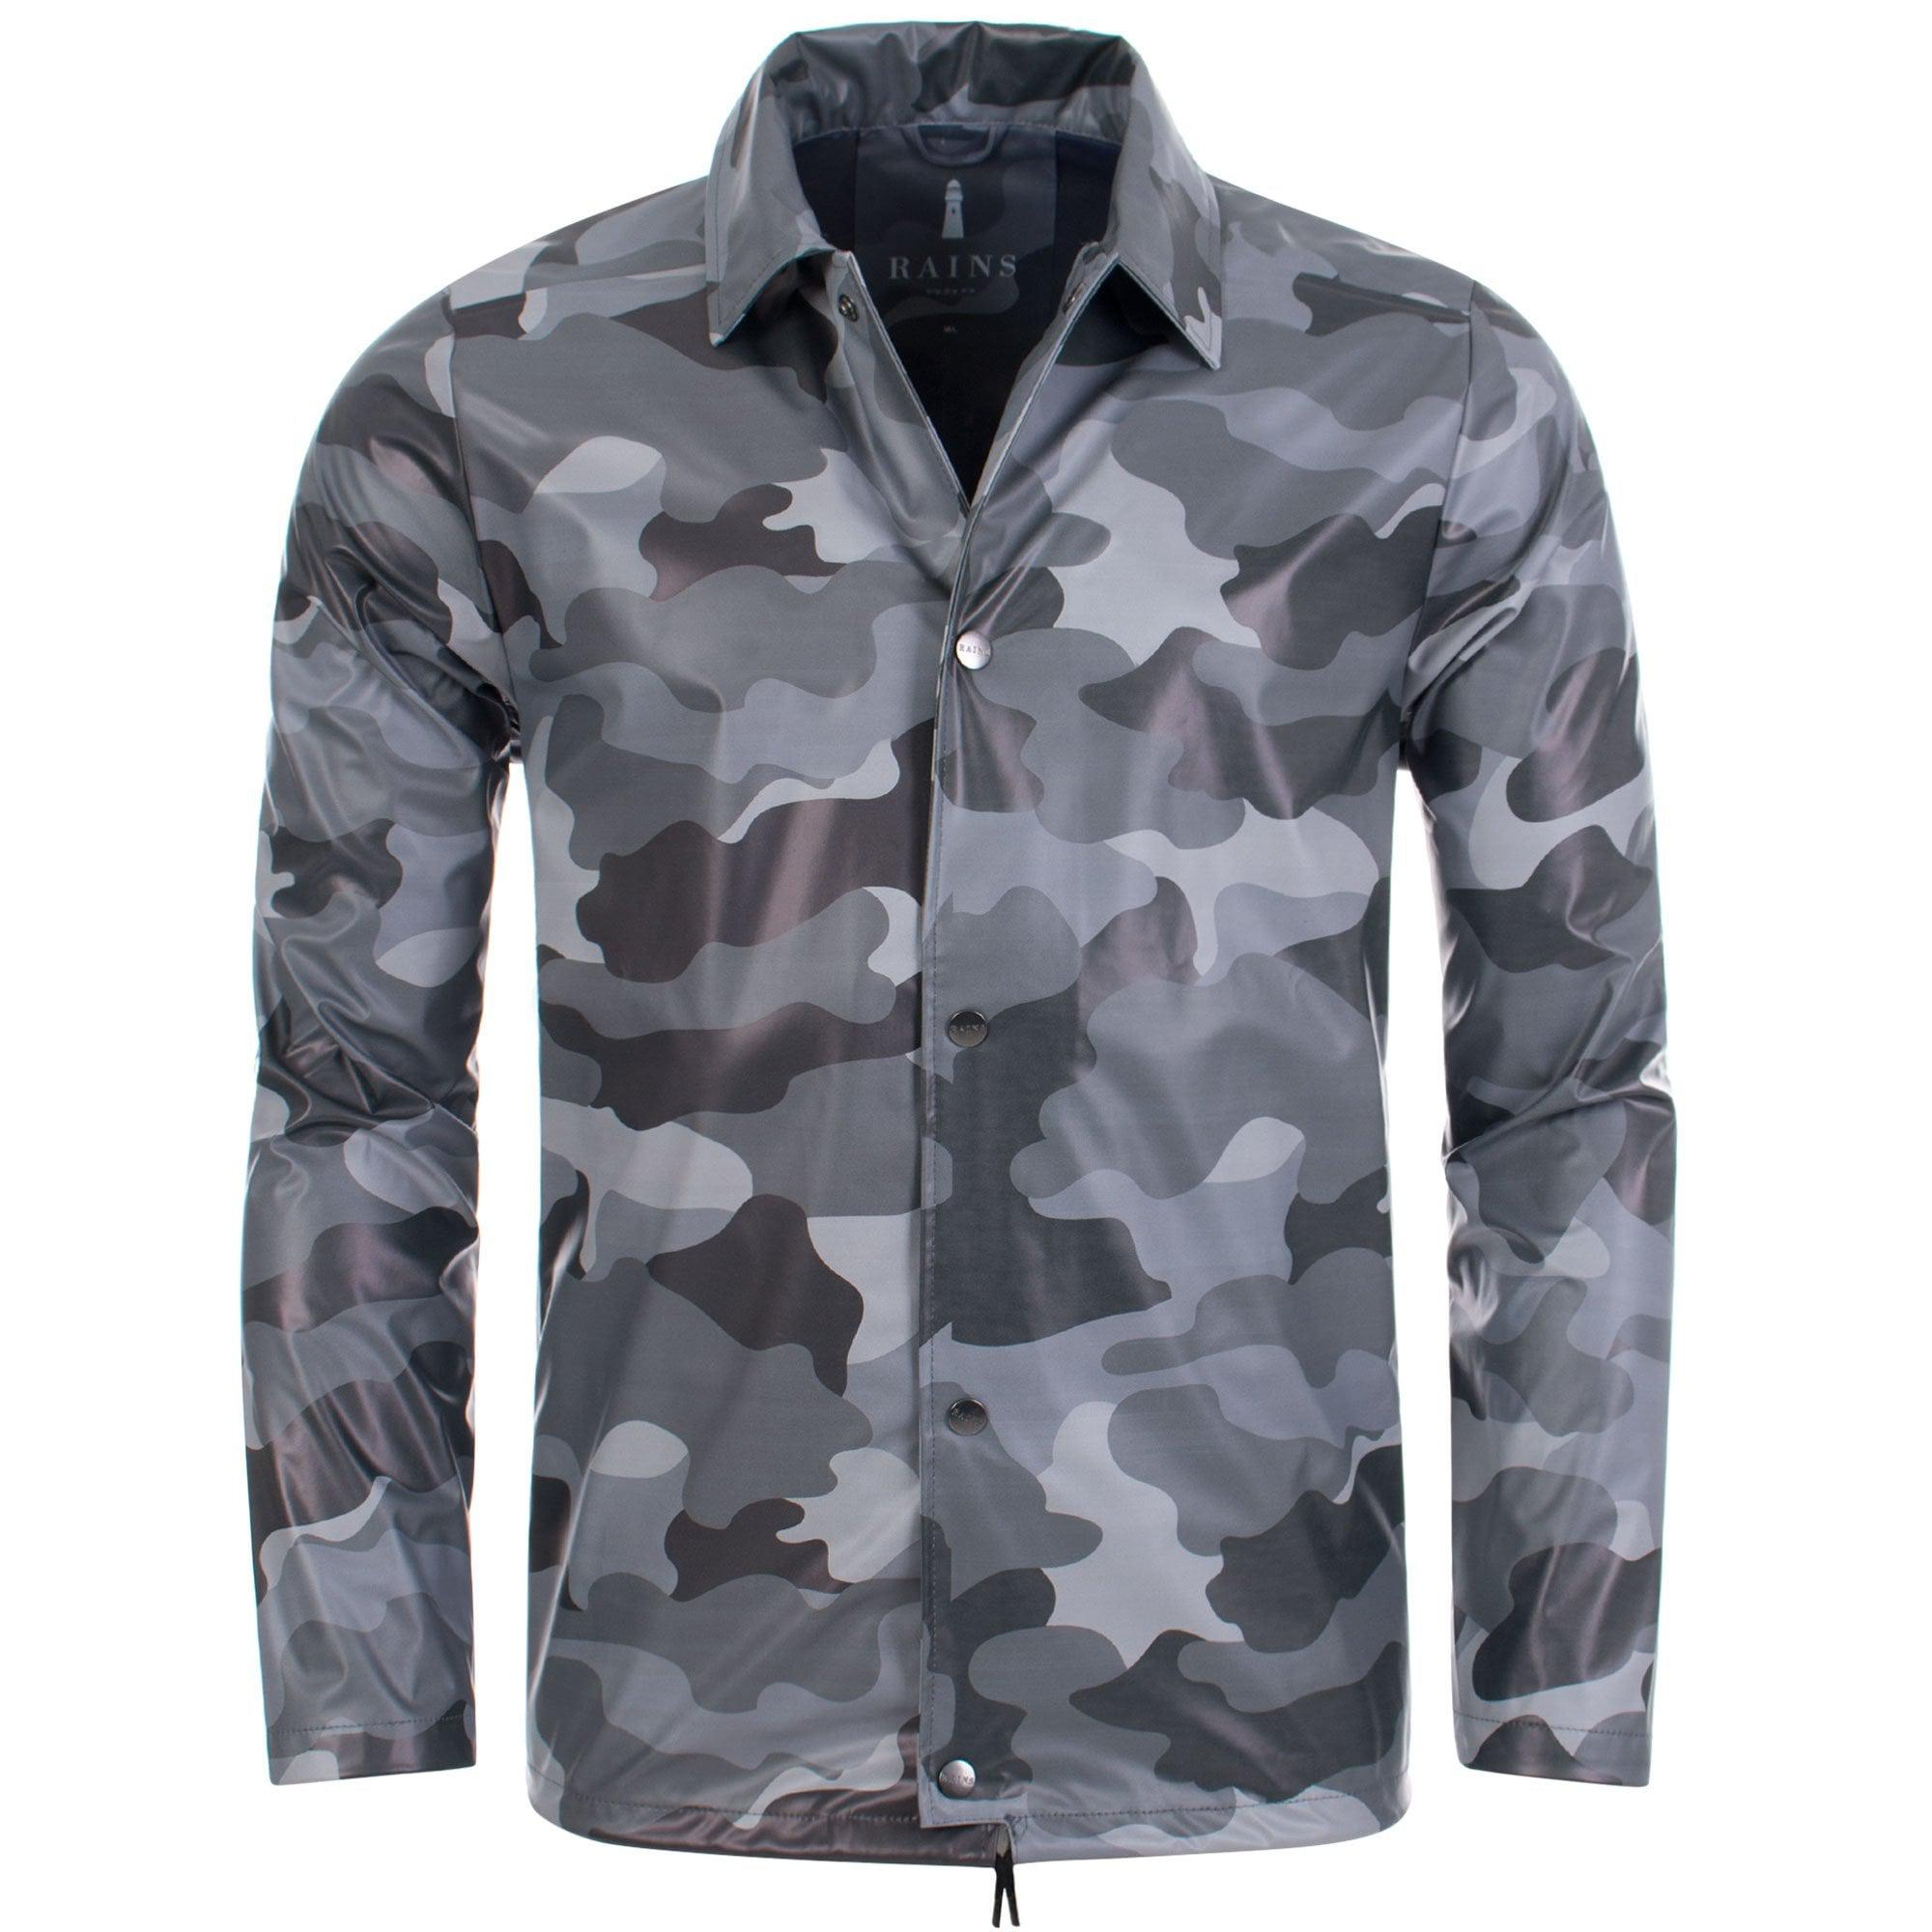 Rains Synthetic Aop Coach Jacket In Sea Camo in White for Men